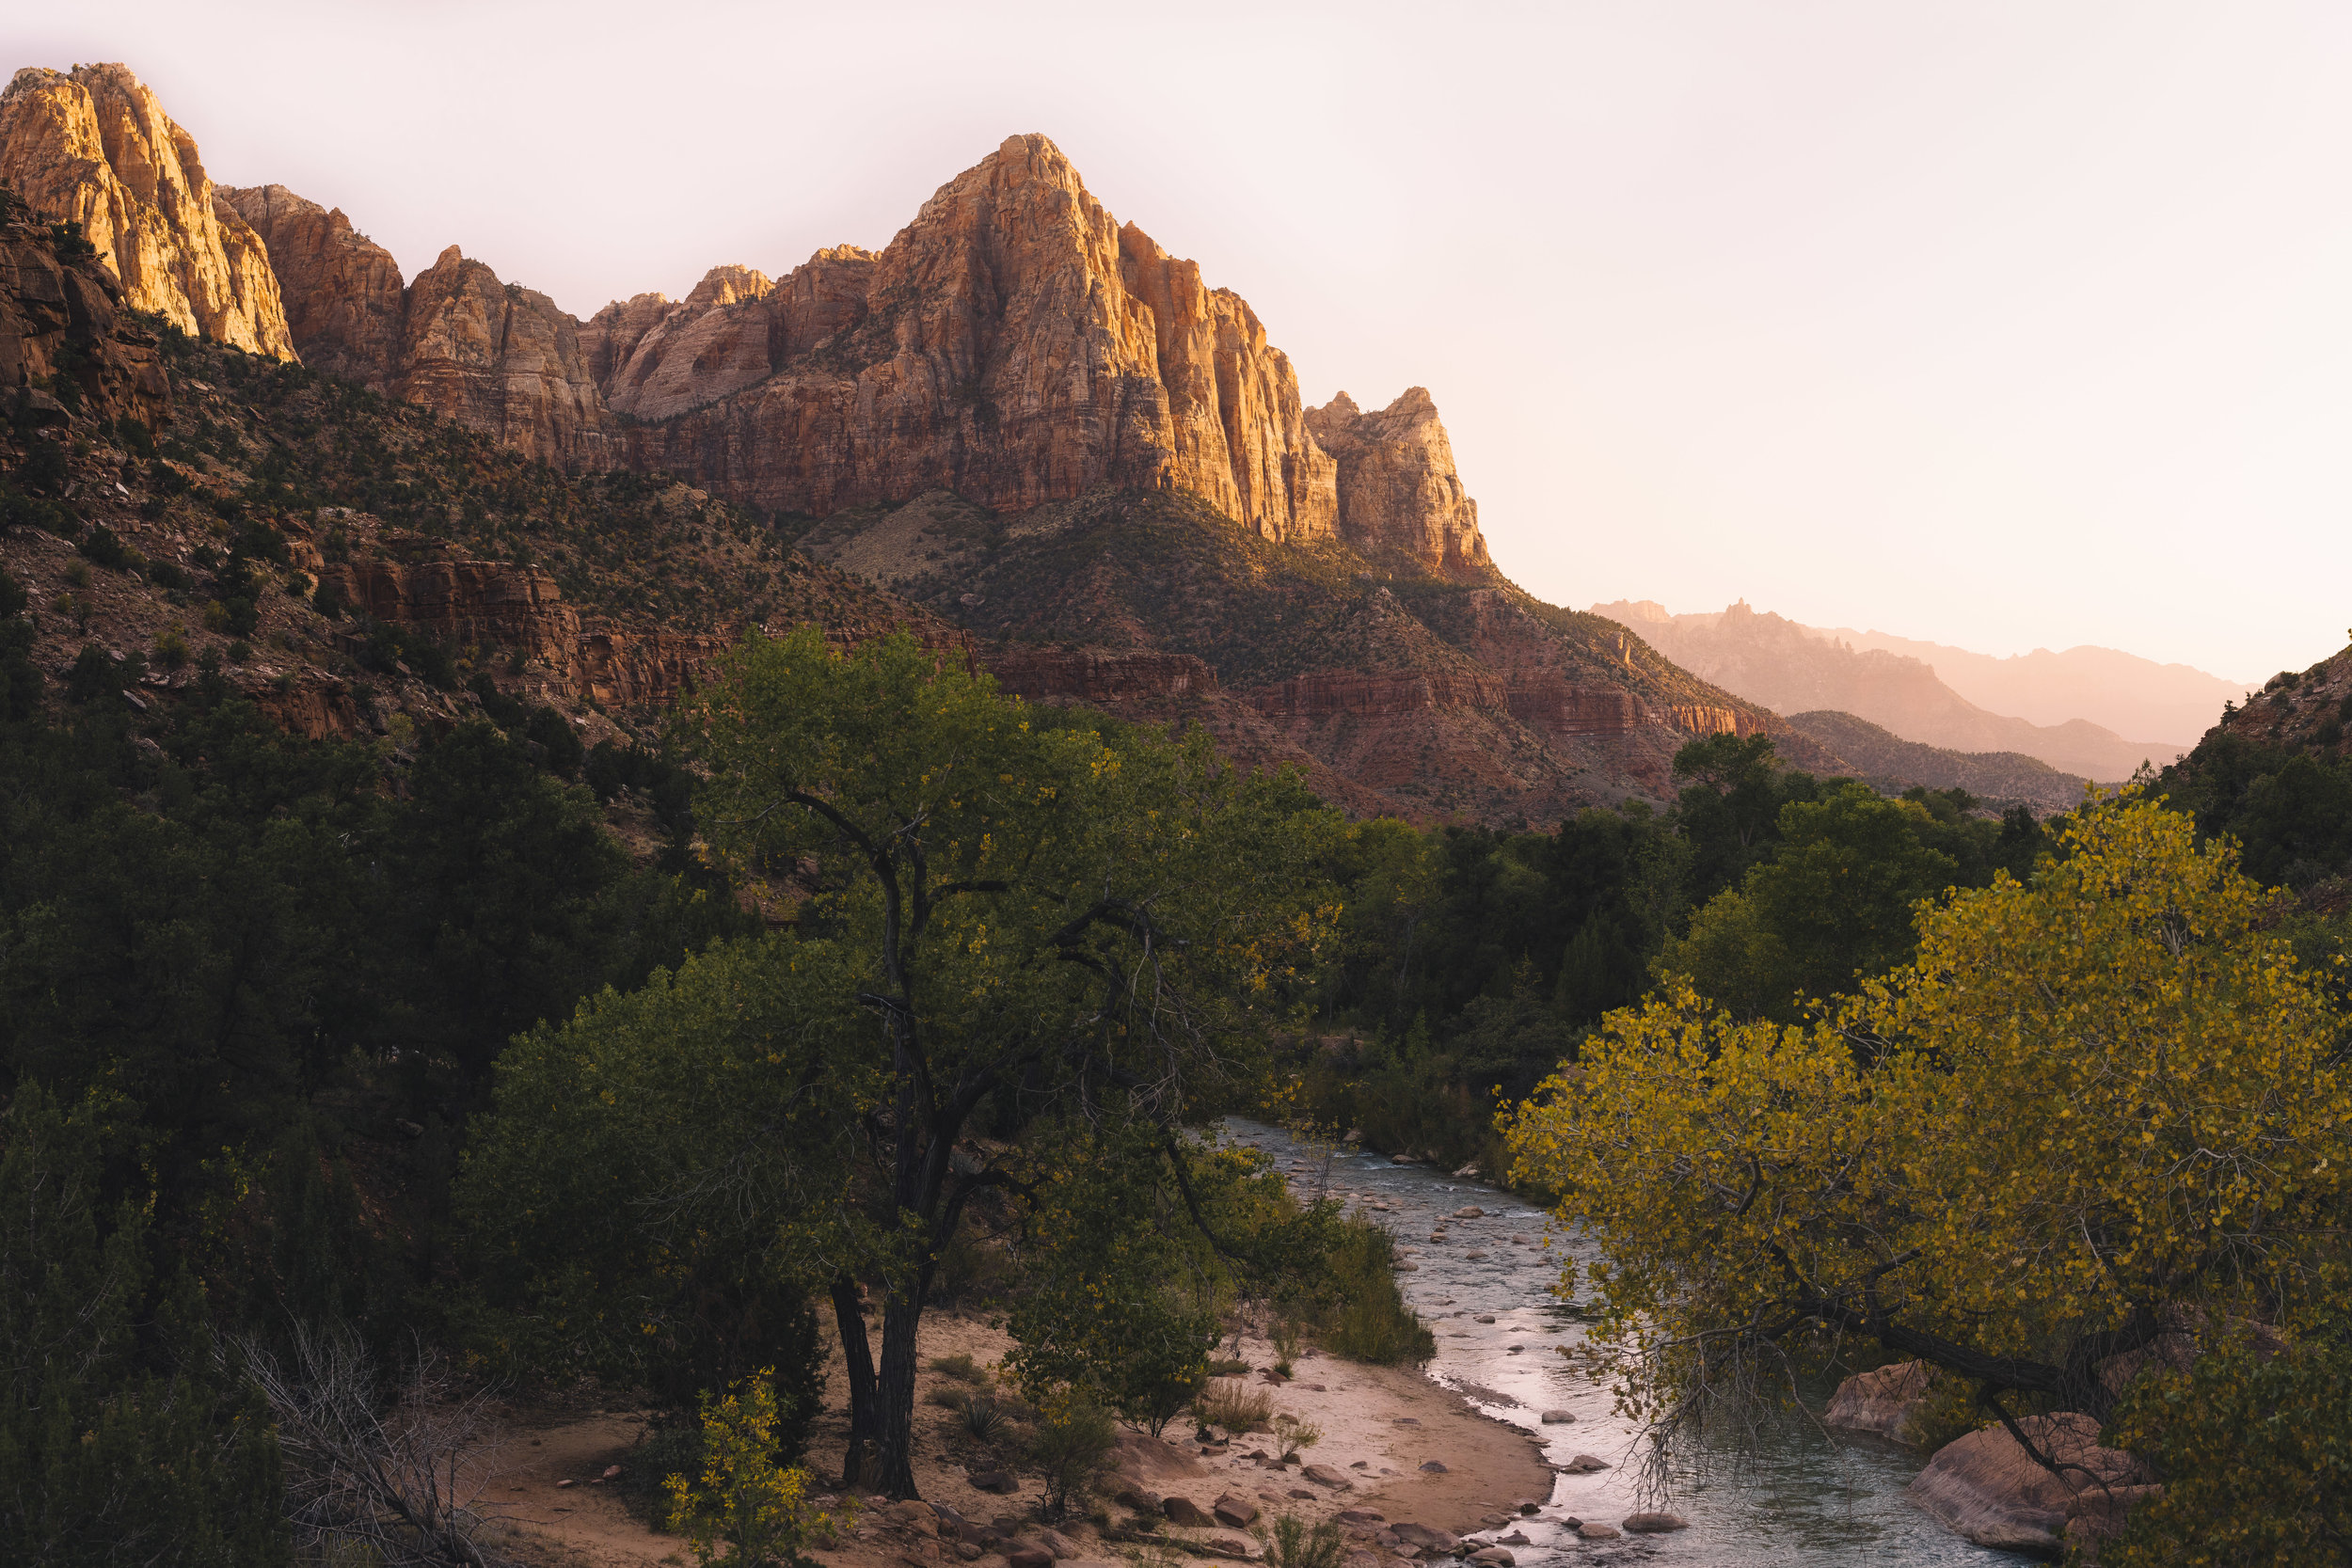 Sunset reflecting off the Watchman Tower at Zion National Park